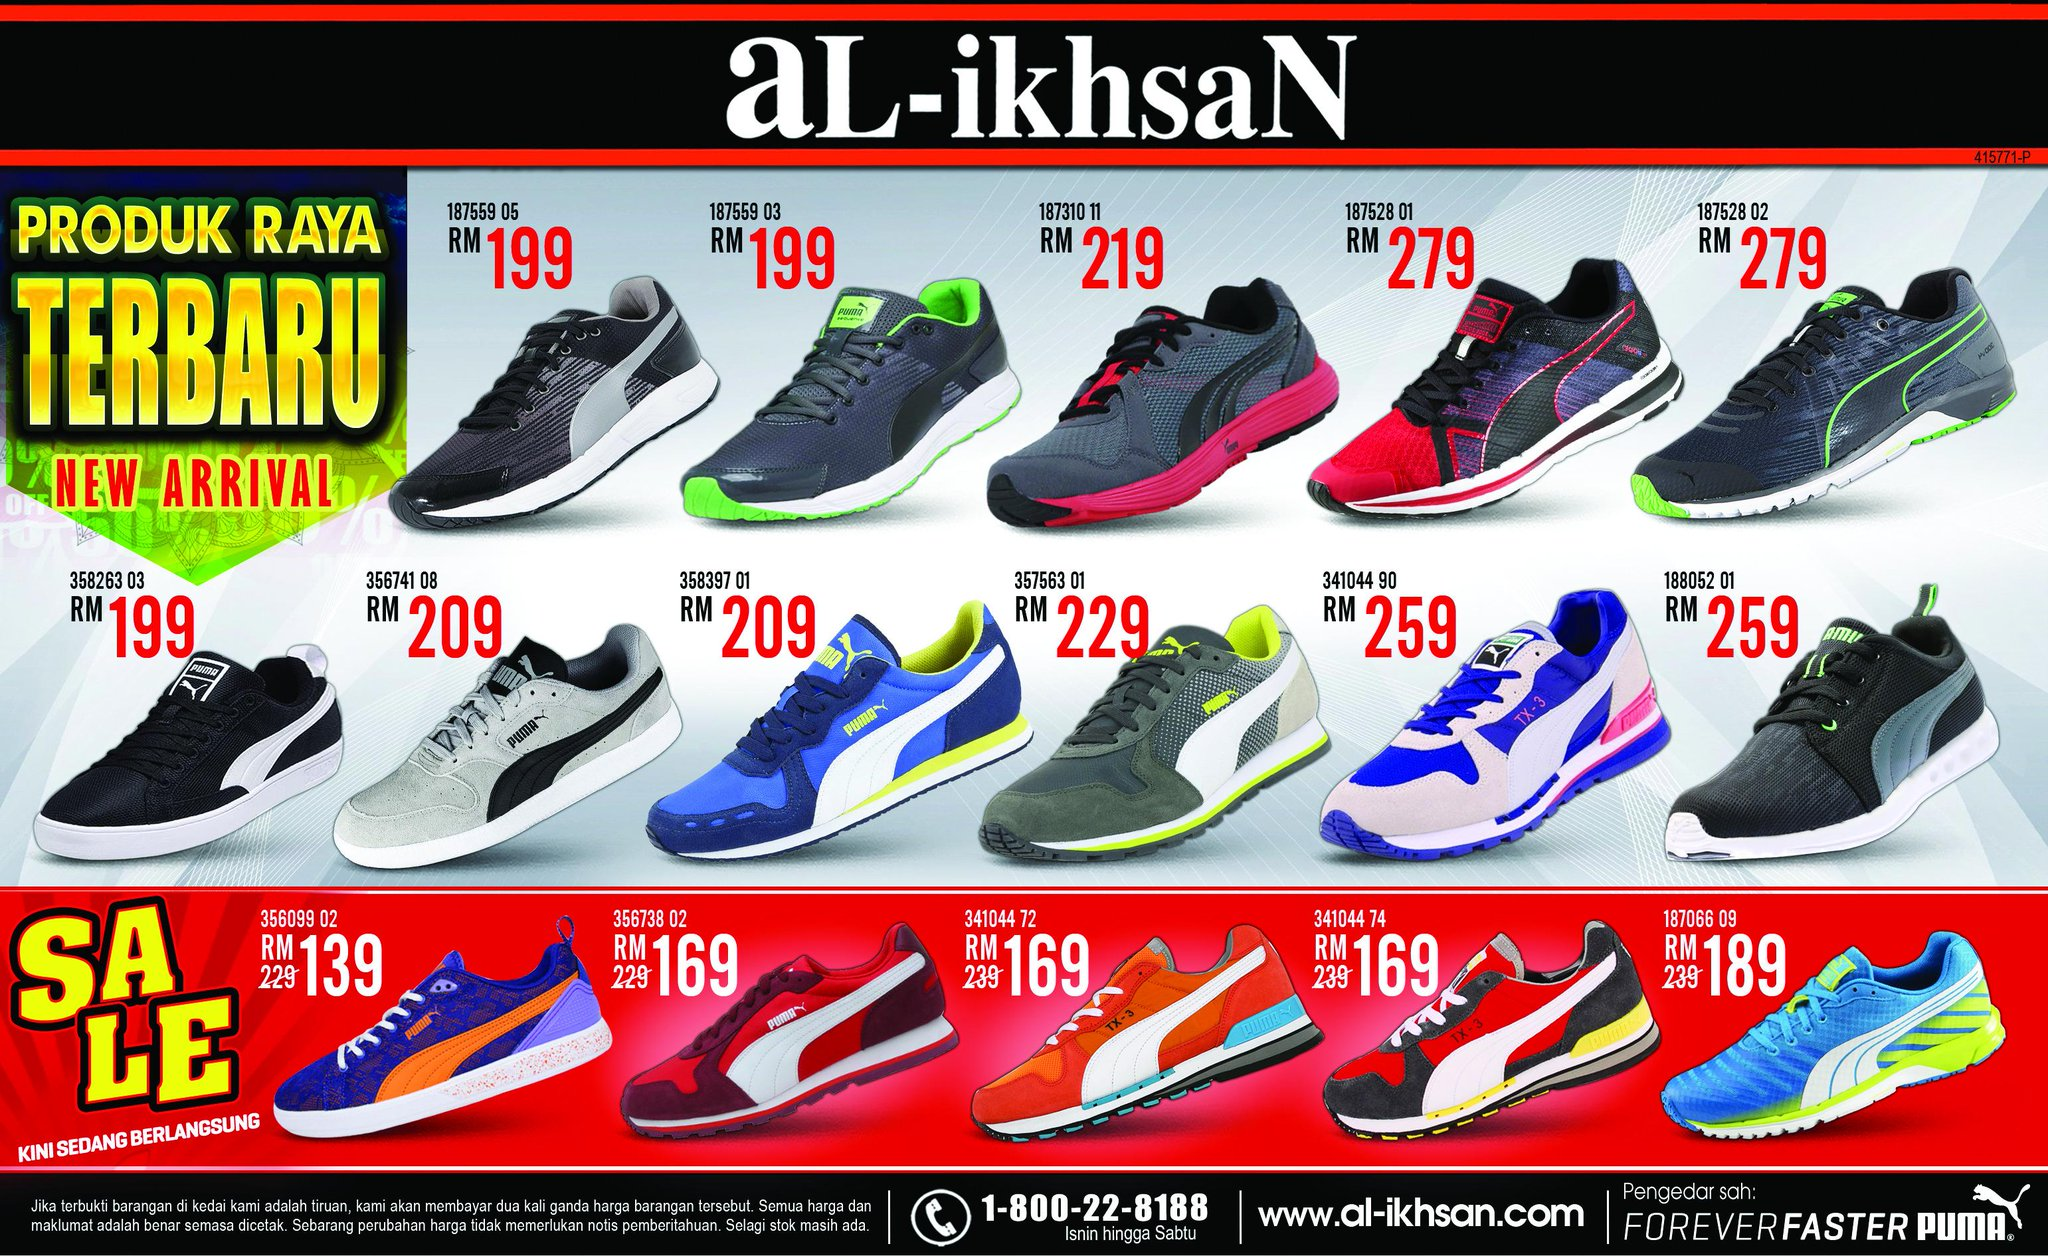 al ikhsan Enjoy the al-ikhsan promotions and find the latest catalogues and sales from your favorite sport stores ⚽ start saving now.